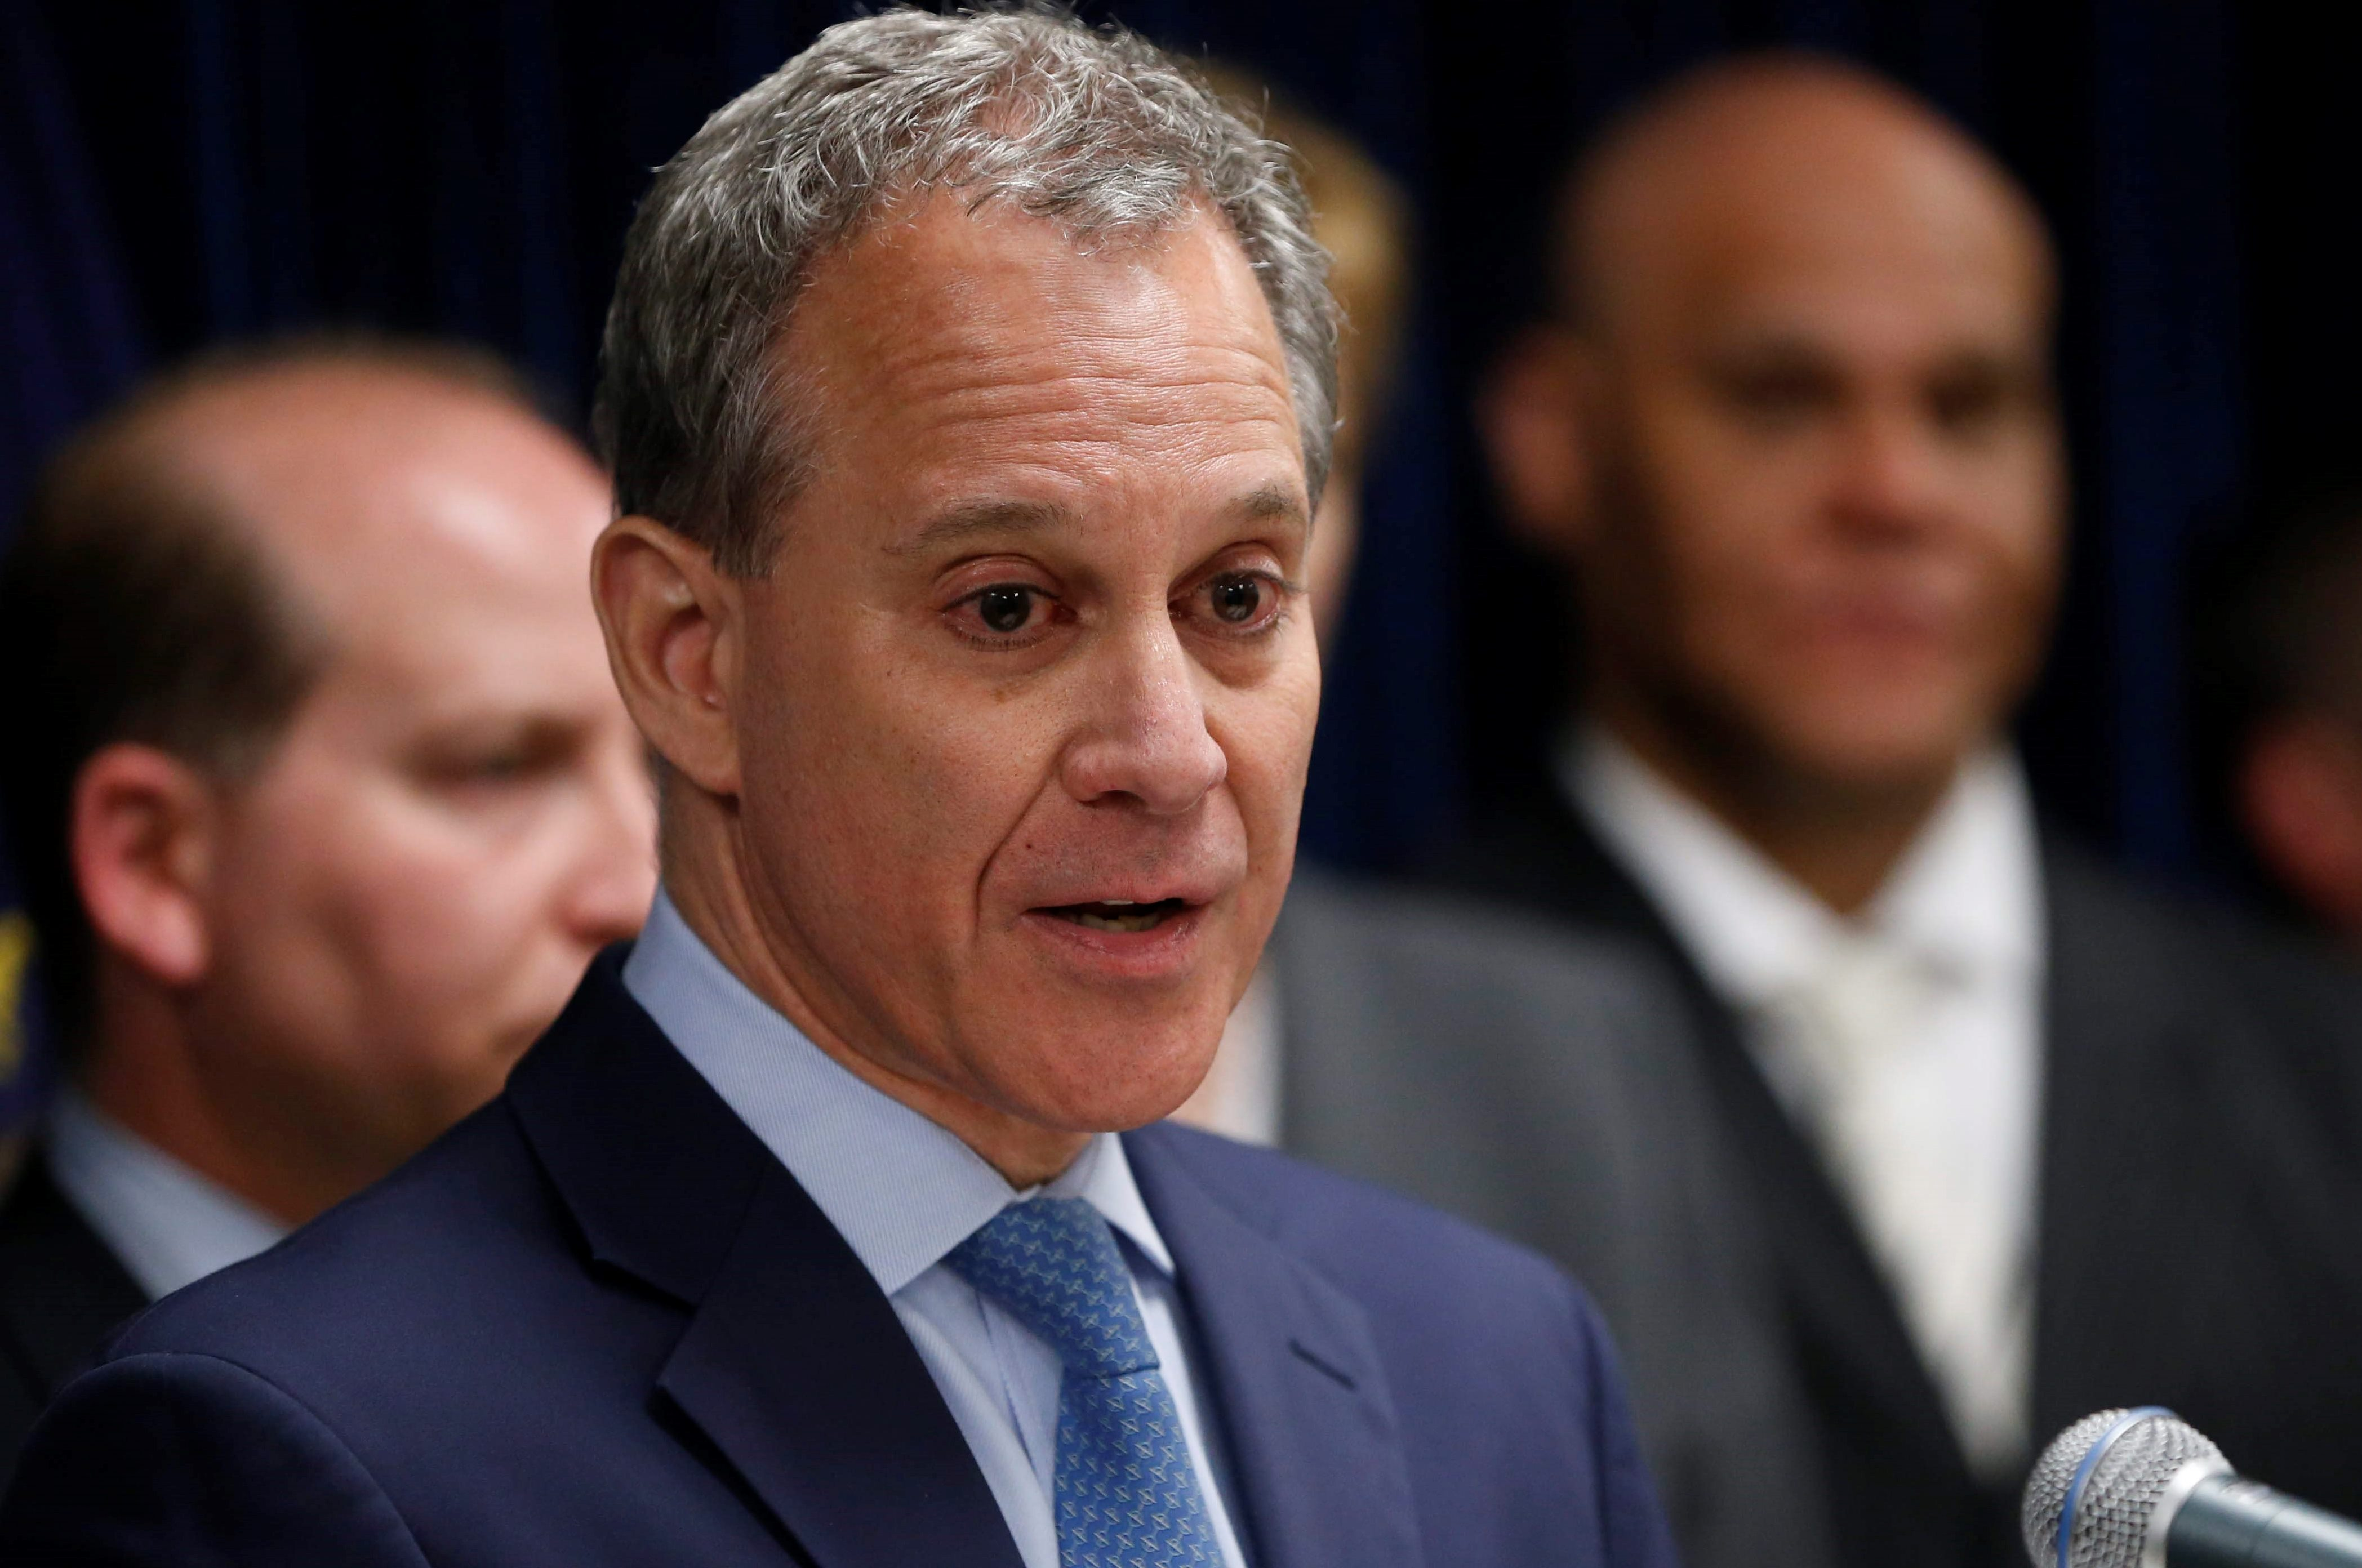 Eric Schneiderman will not face criminal charges over allegations of sexual assault made by four women. (Derek Gee/News file photo)